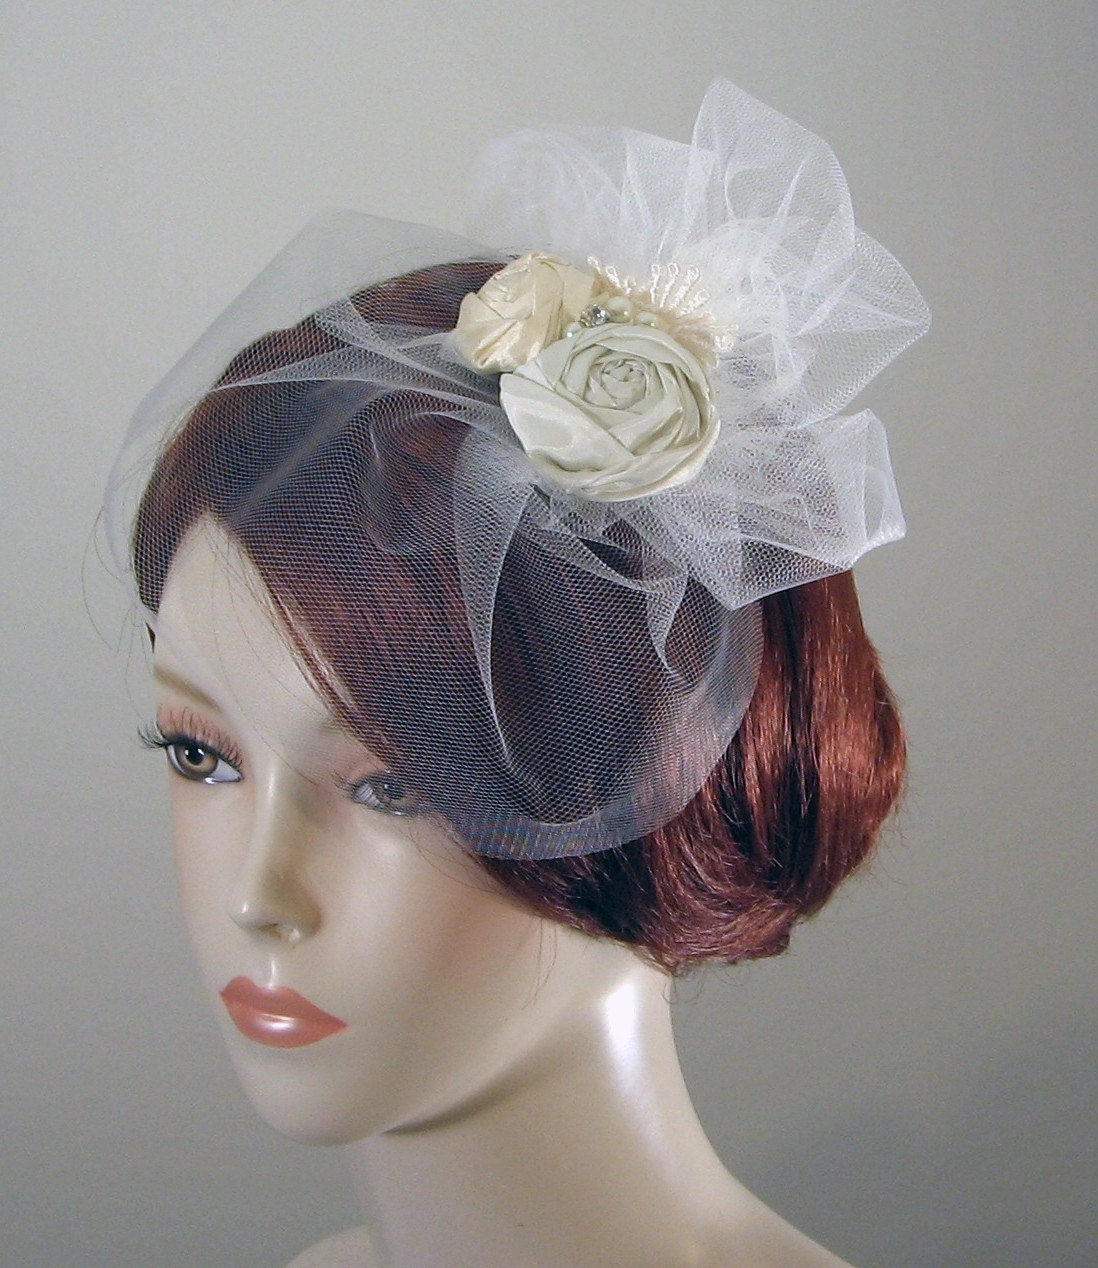 At Last, Ivory Tulle Birdcage Veil with Matching Rosette Fascinator